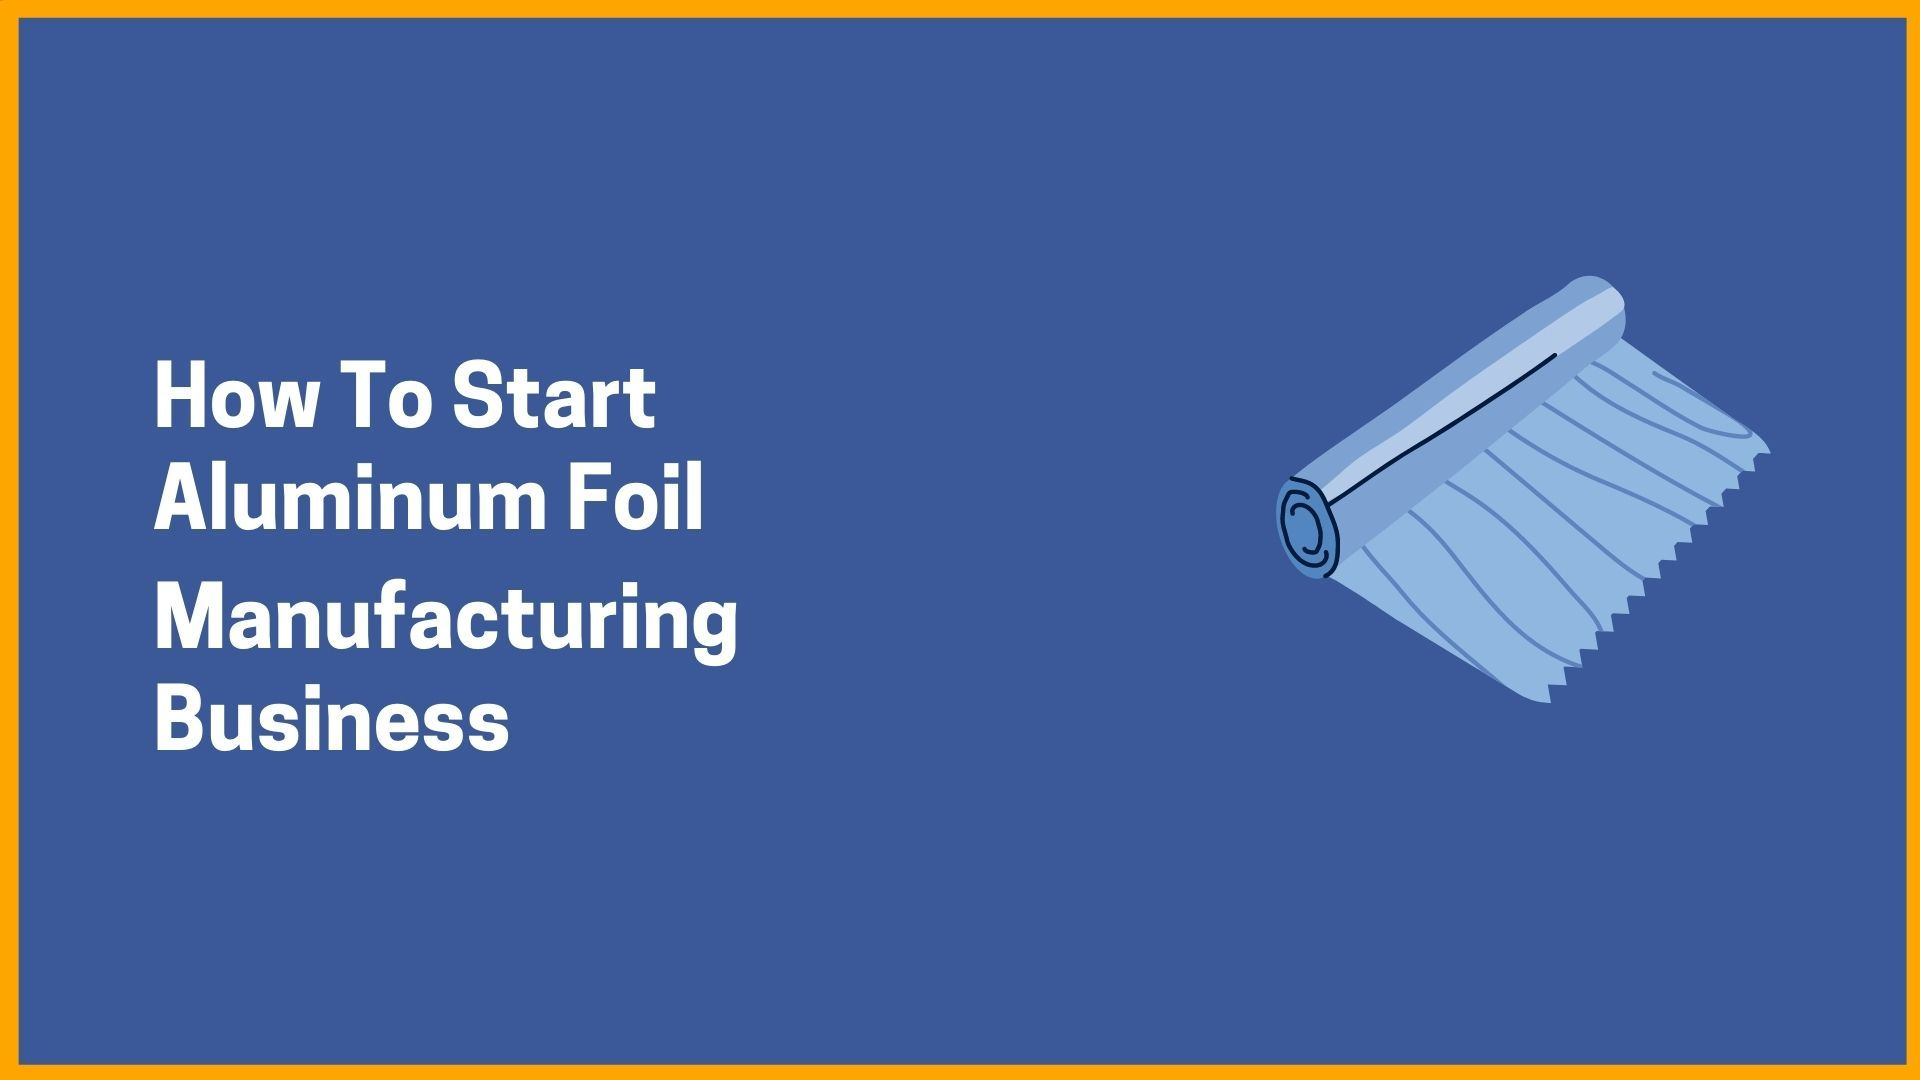 How To Start Aluminum Foil Manufacturing Business